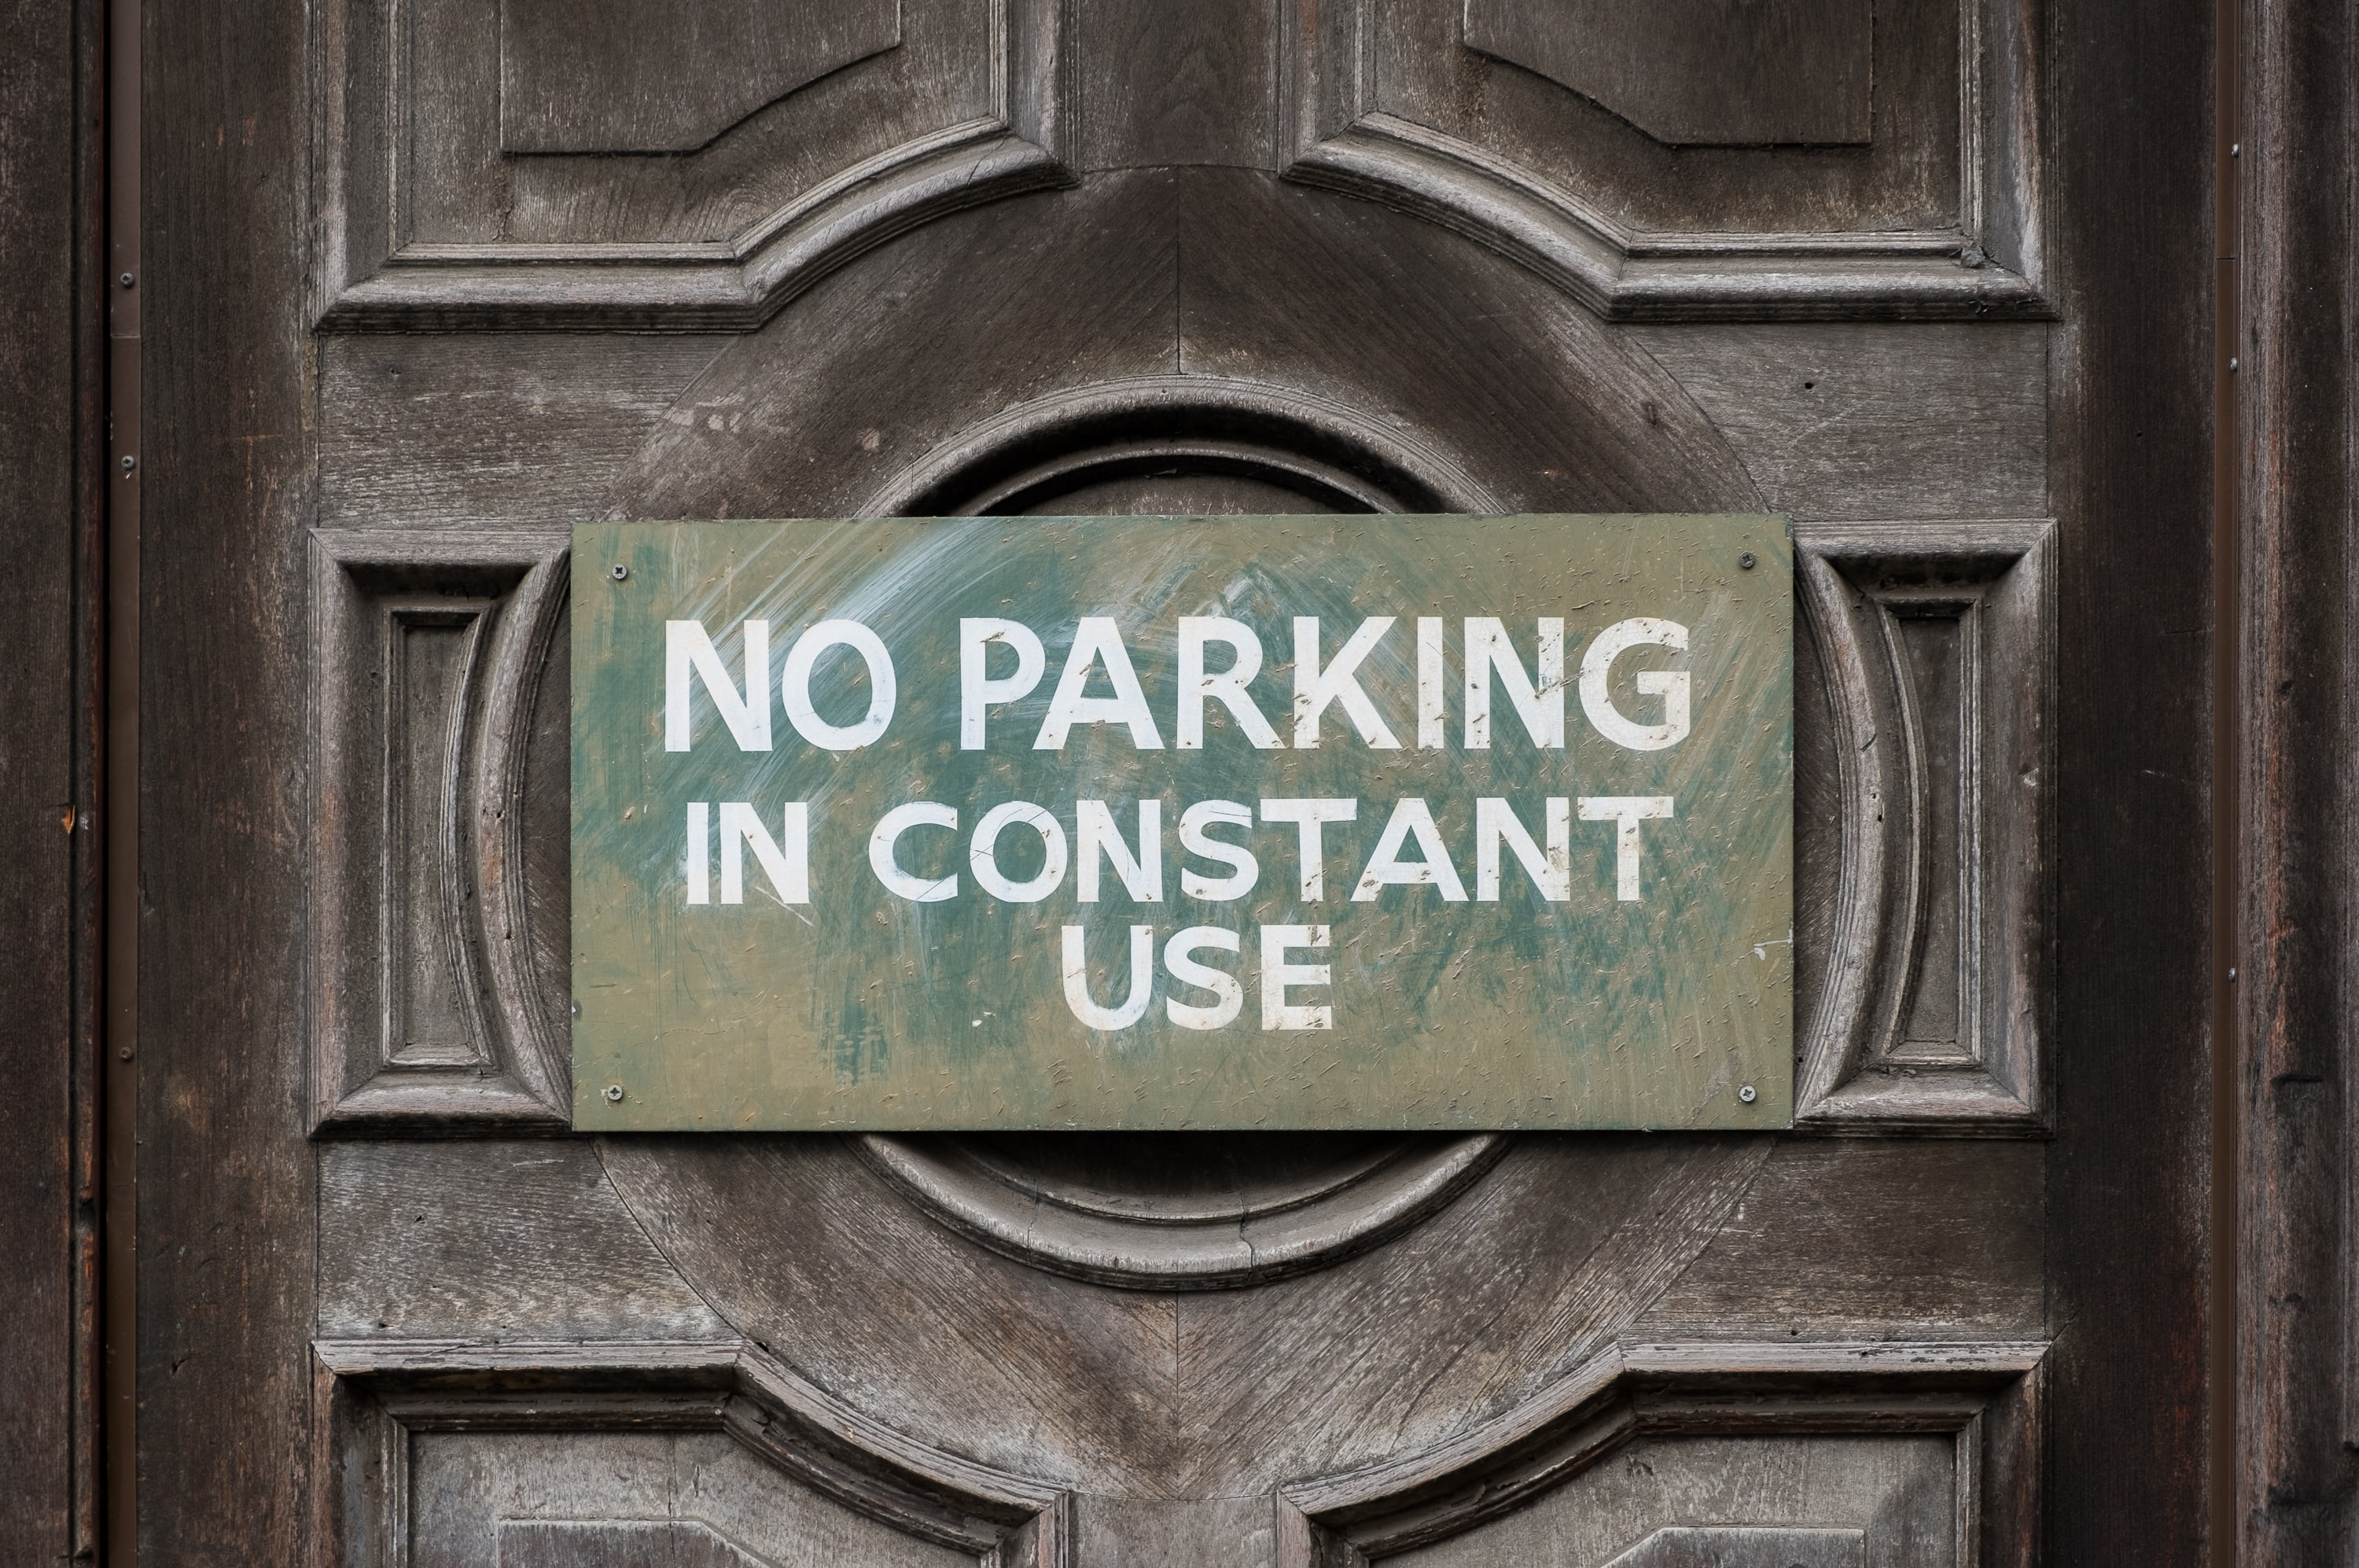 no parking in constant use signboard hung on door